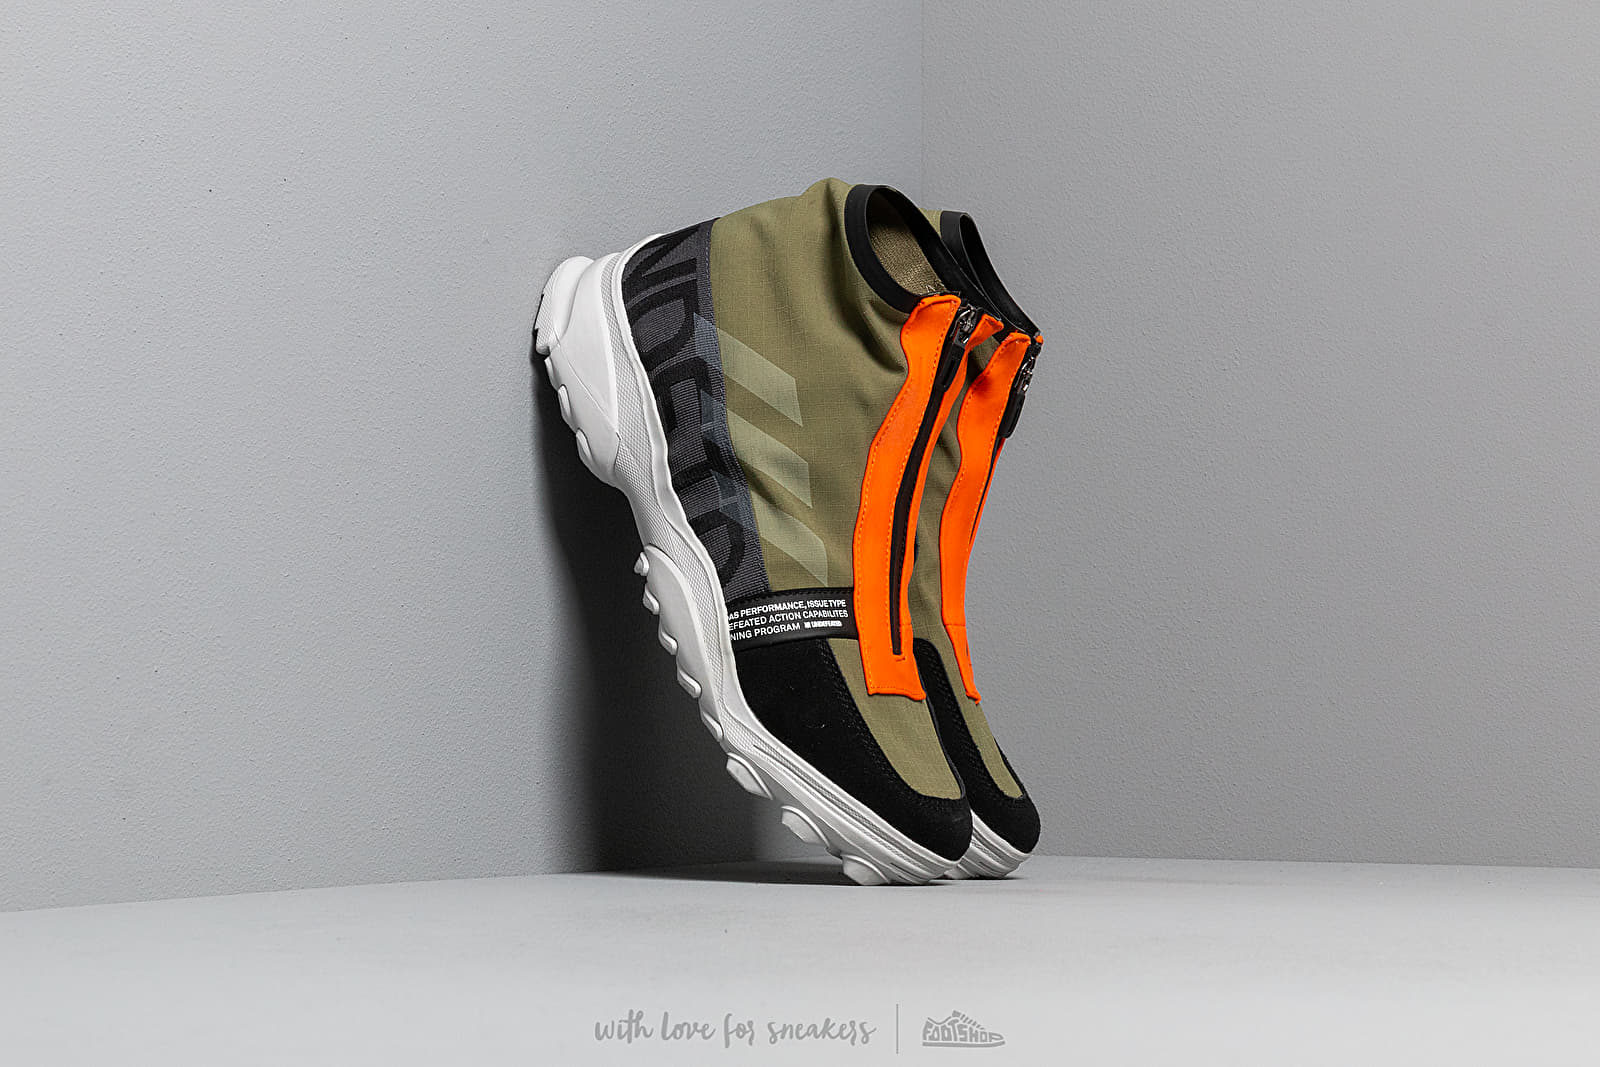 Scarpe e sneaker da uomo adidas x Undefeated GSG9 Olive Cargo/ Light Grey Heather/ Orange